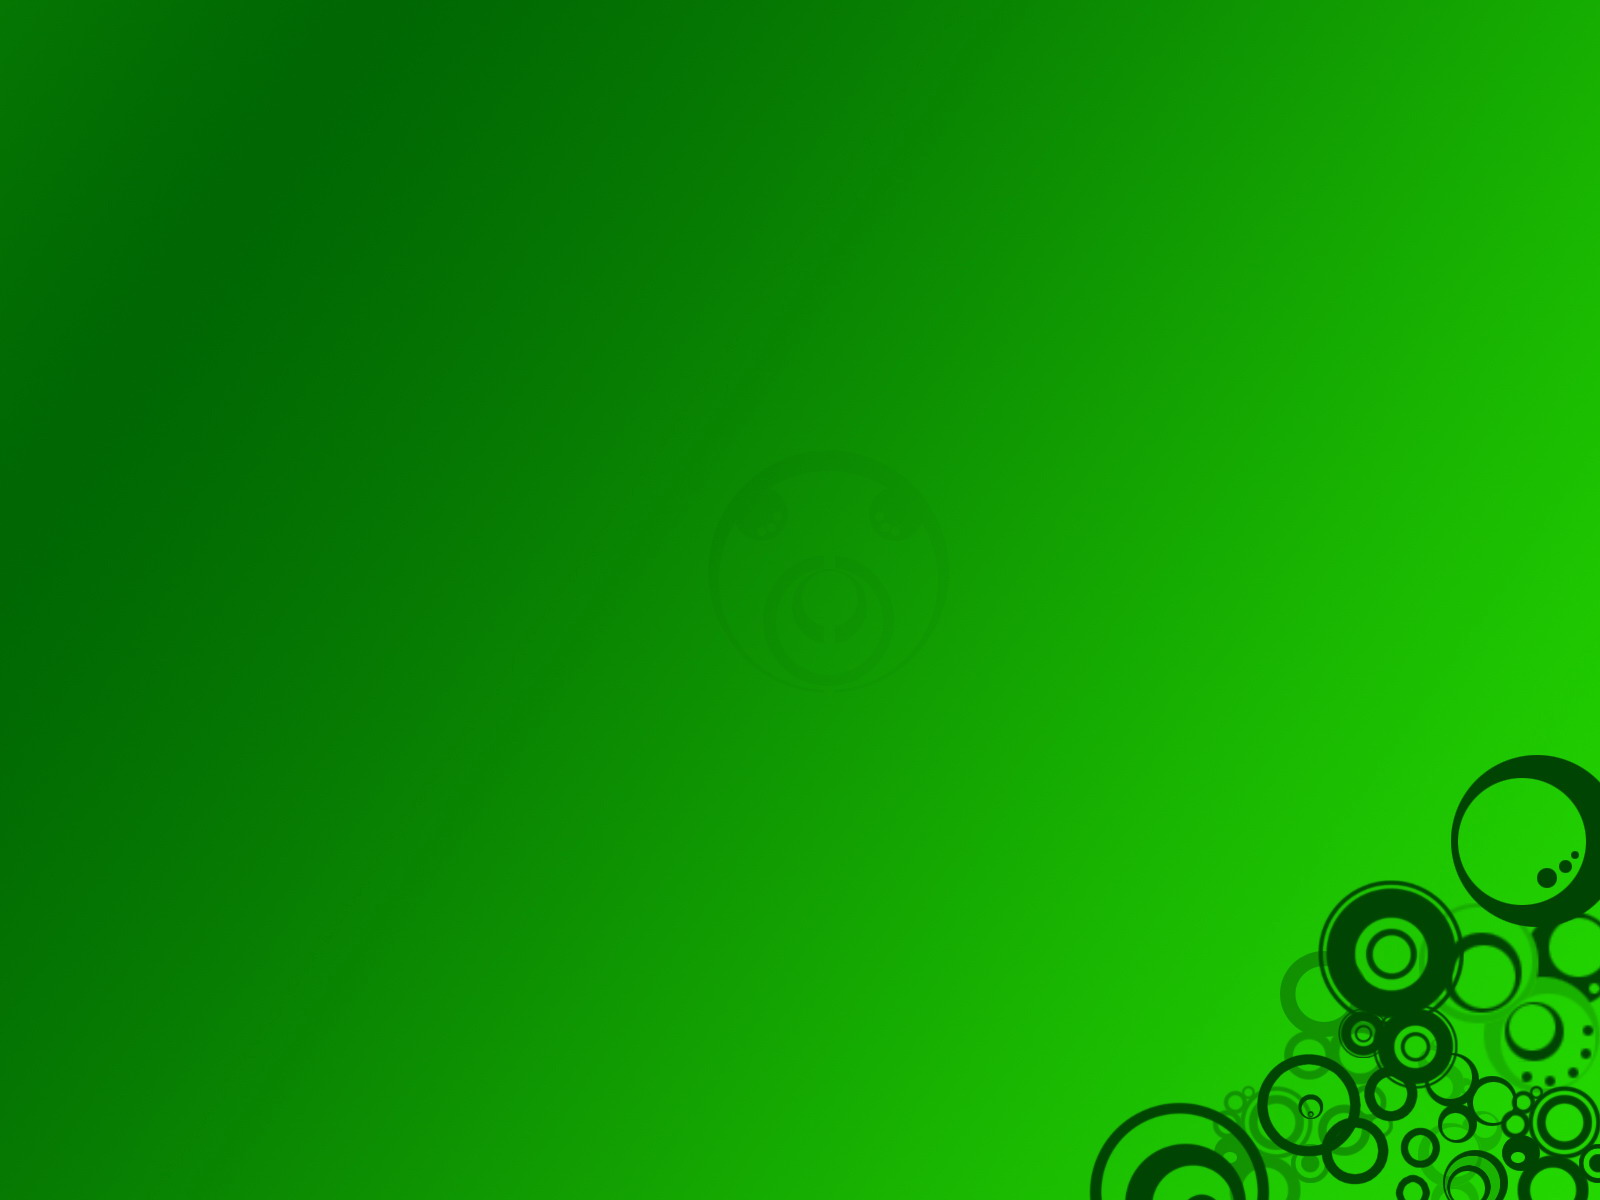 A Place For HD Wallpapers Desktop Wallpapers Green 1600x1200